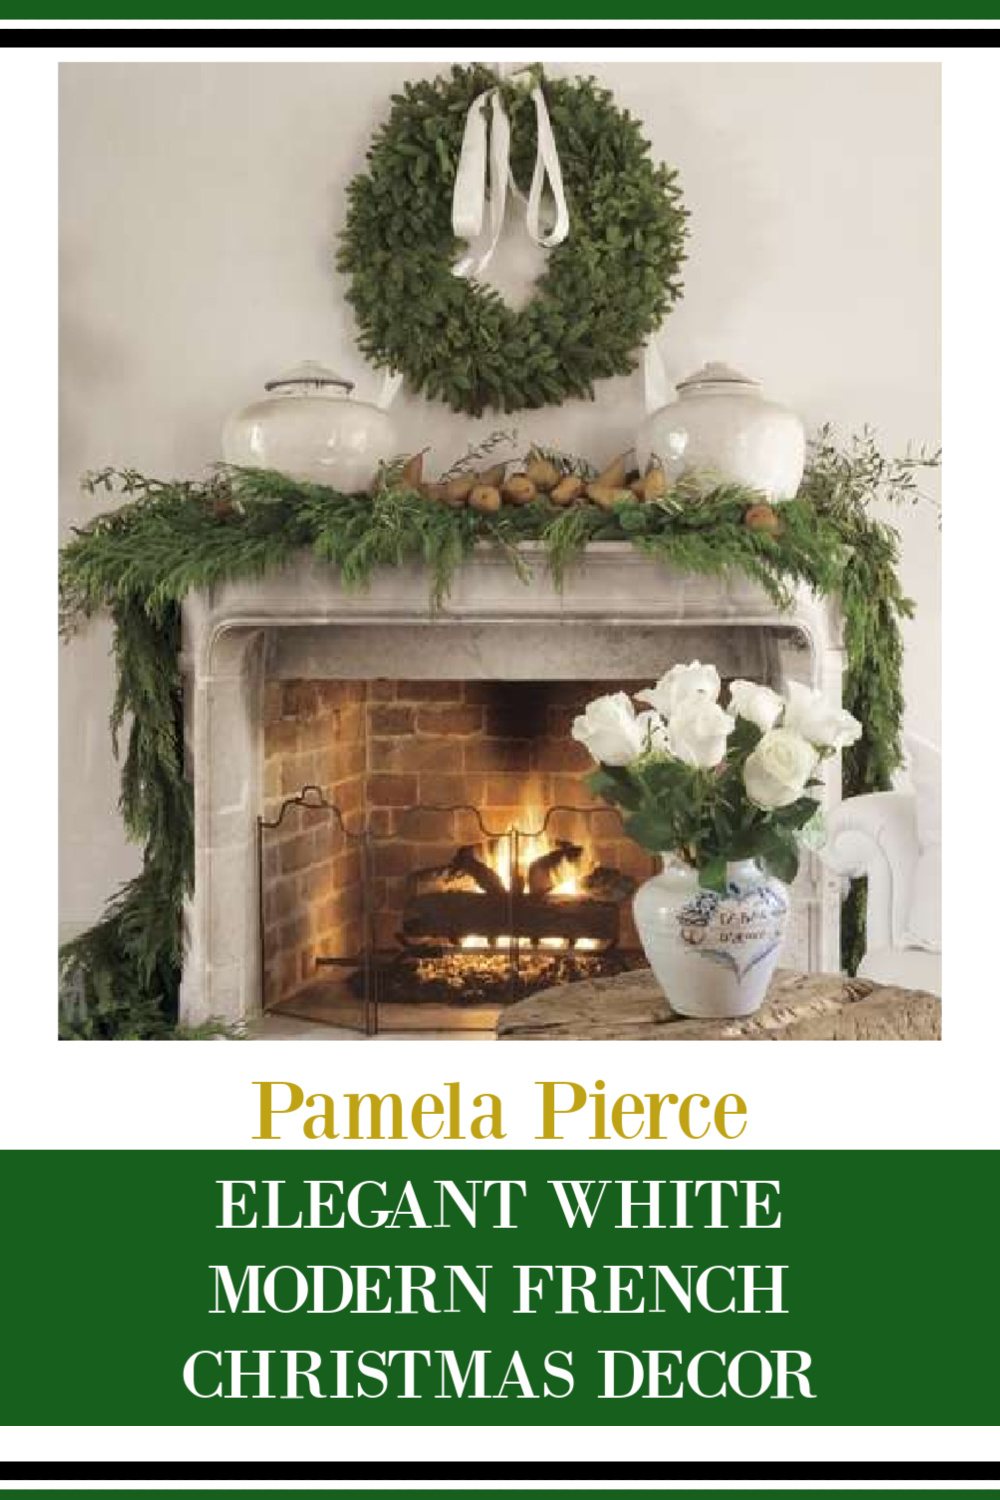 Pamela Pierce home at Christmas is a treasury of elegant modern French white goodness!